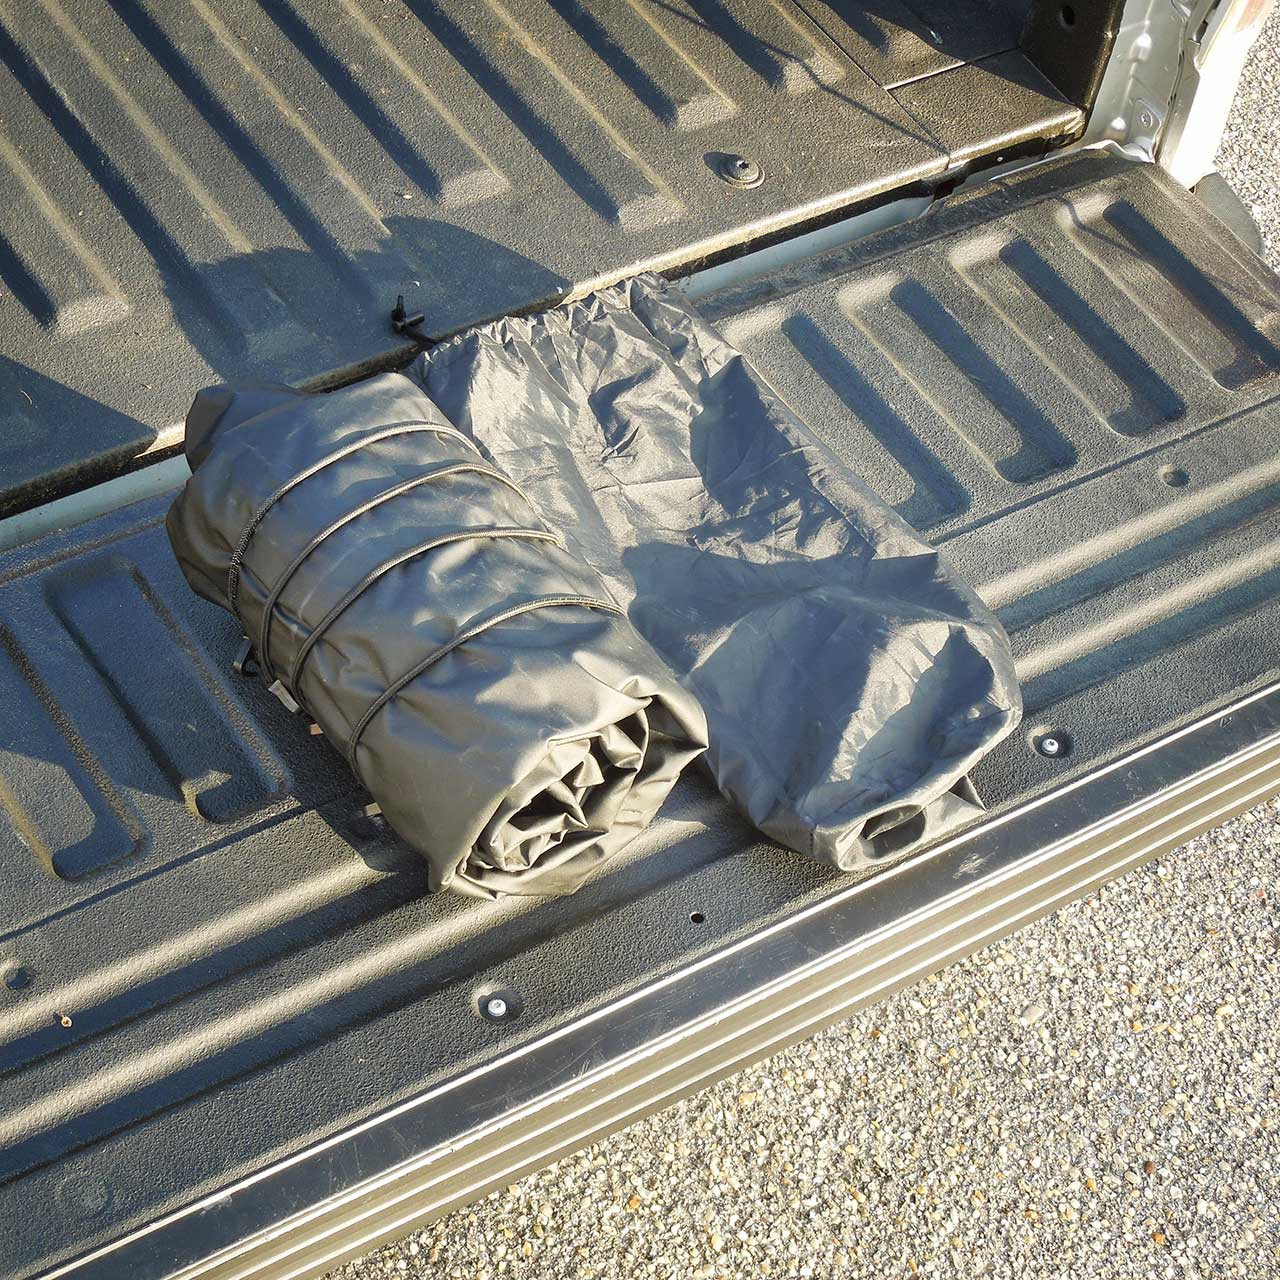 ... Each waterproof Tuff Truck Bag cargo system comes with four bungees one Tuff Truck Bag ... & Black Truck Bag | Works Great with Black Truck Boxes | Black Tuff ...